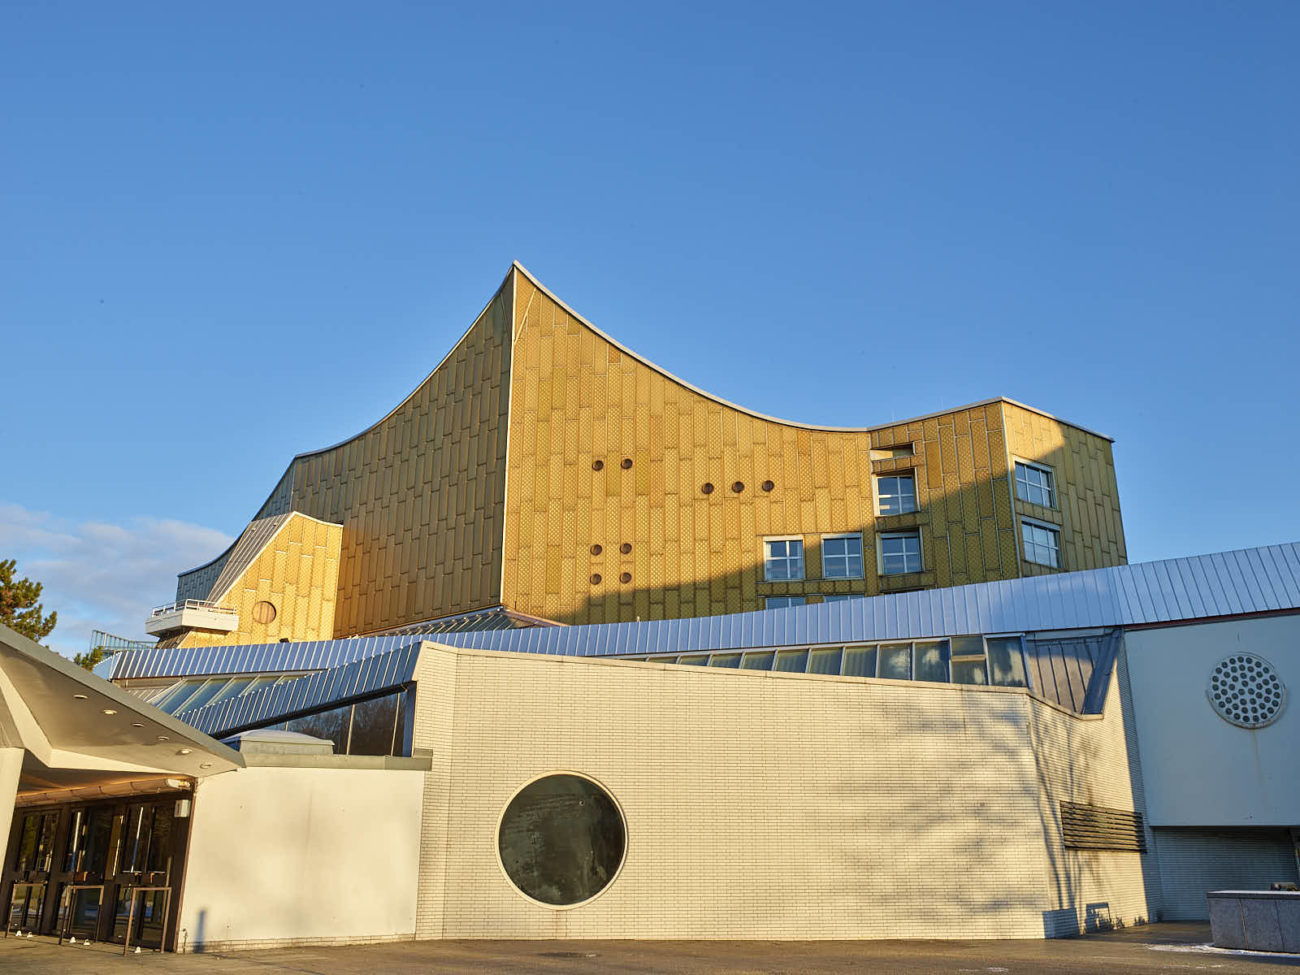 Exterior of a large angular building clad in brick, glass and large rectangular tiles, under a blue sky.